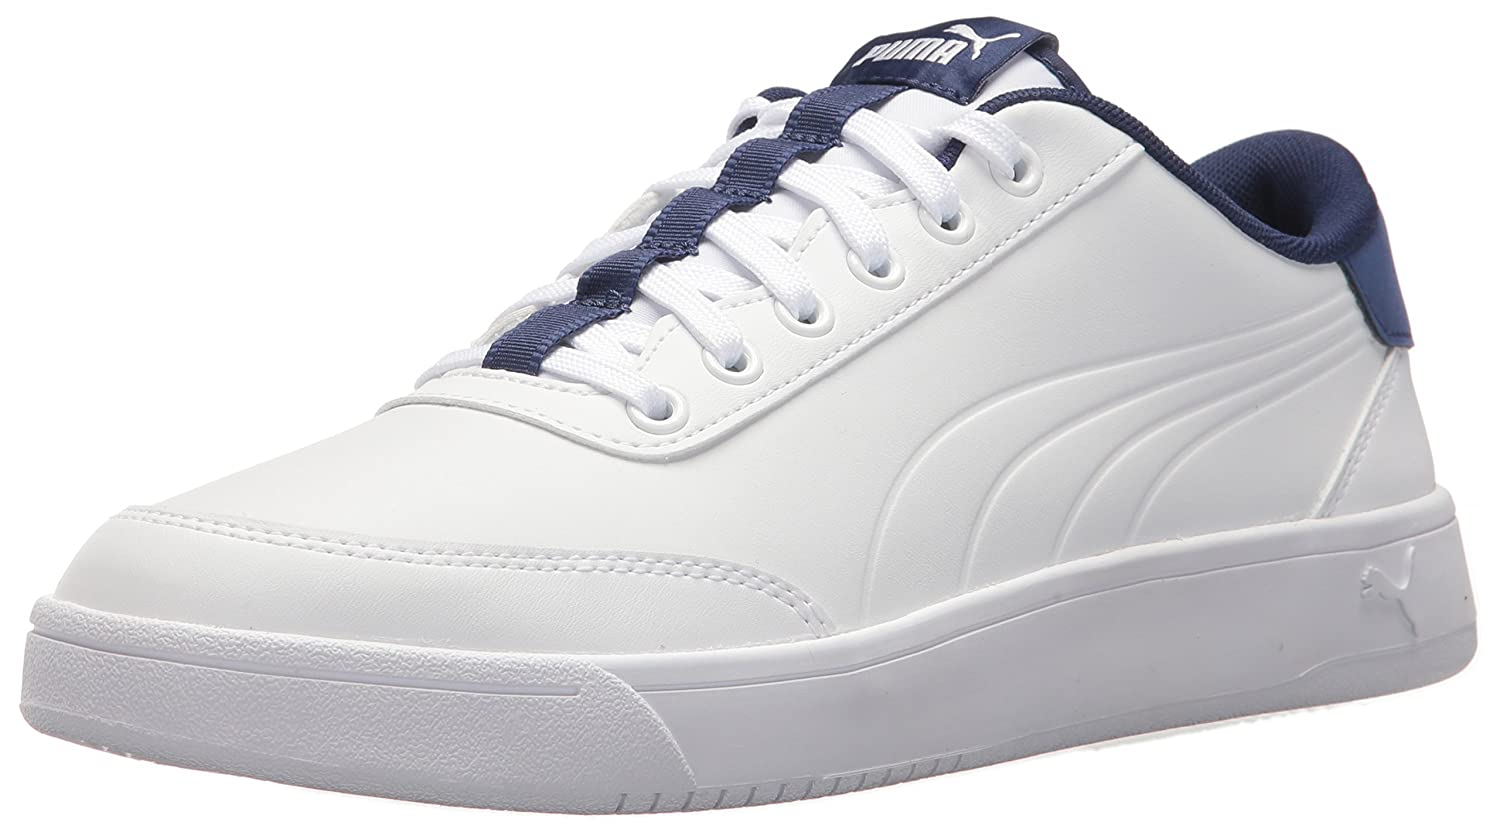 PUMA Men's Court Breaker L Sneaker